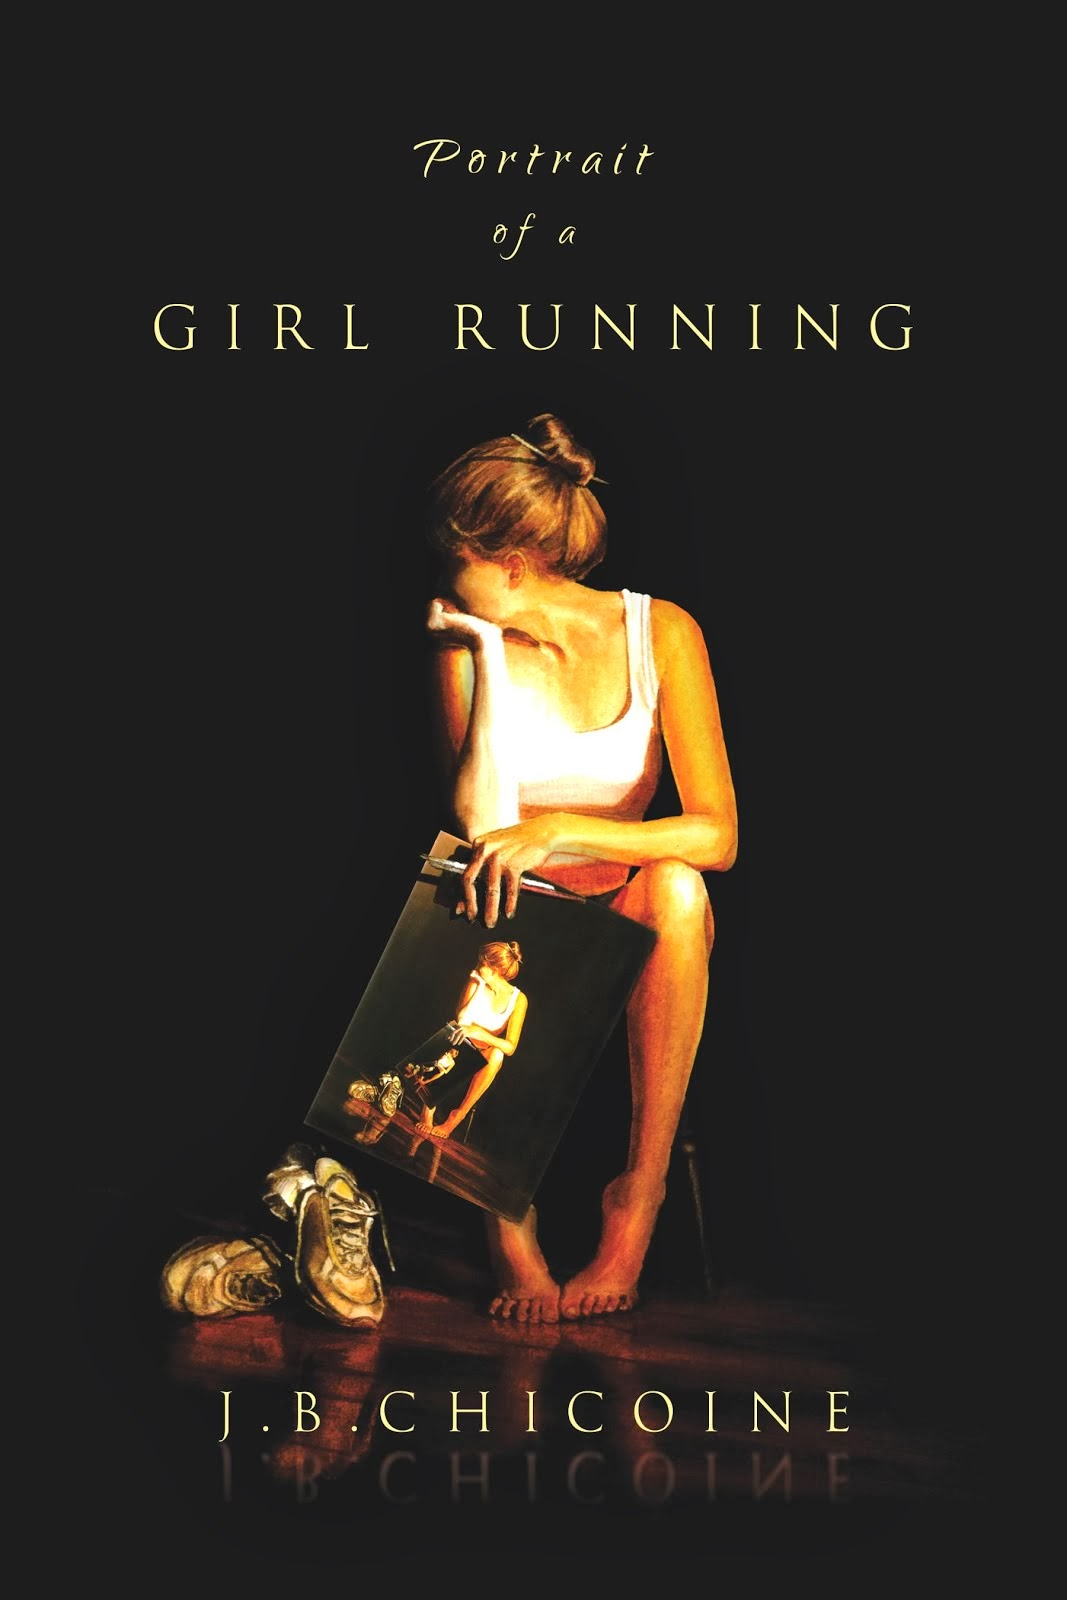 Portrait of a Girl Running